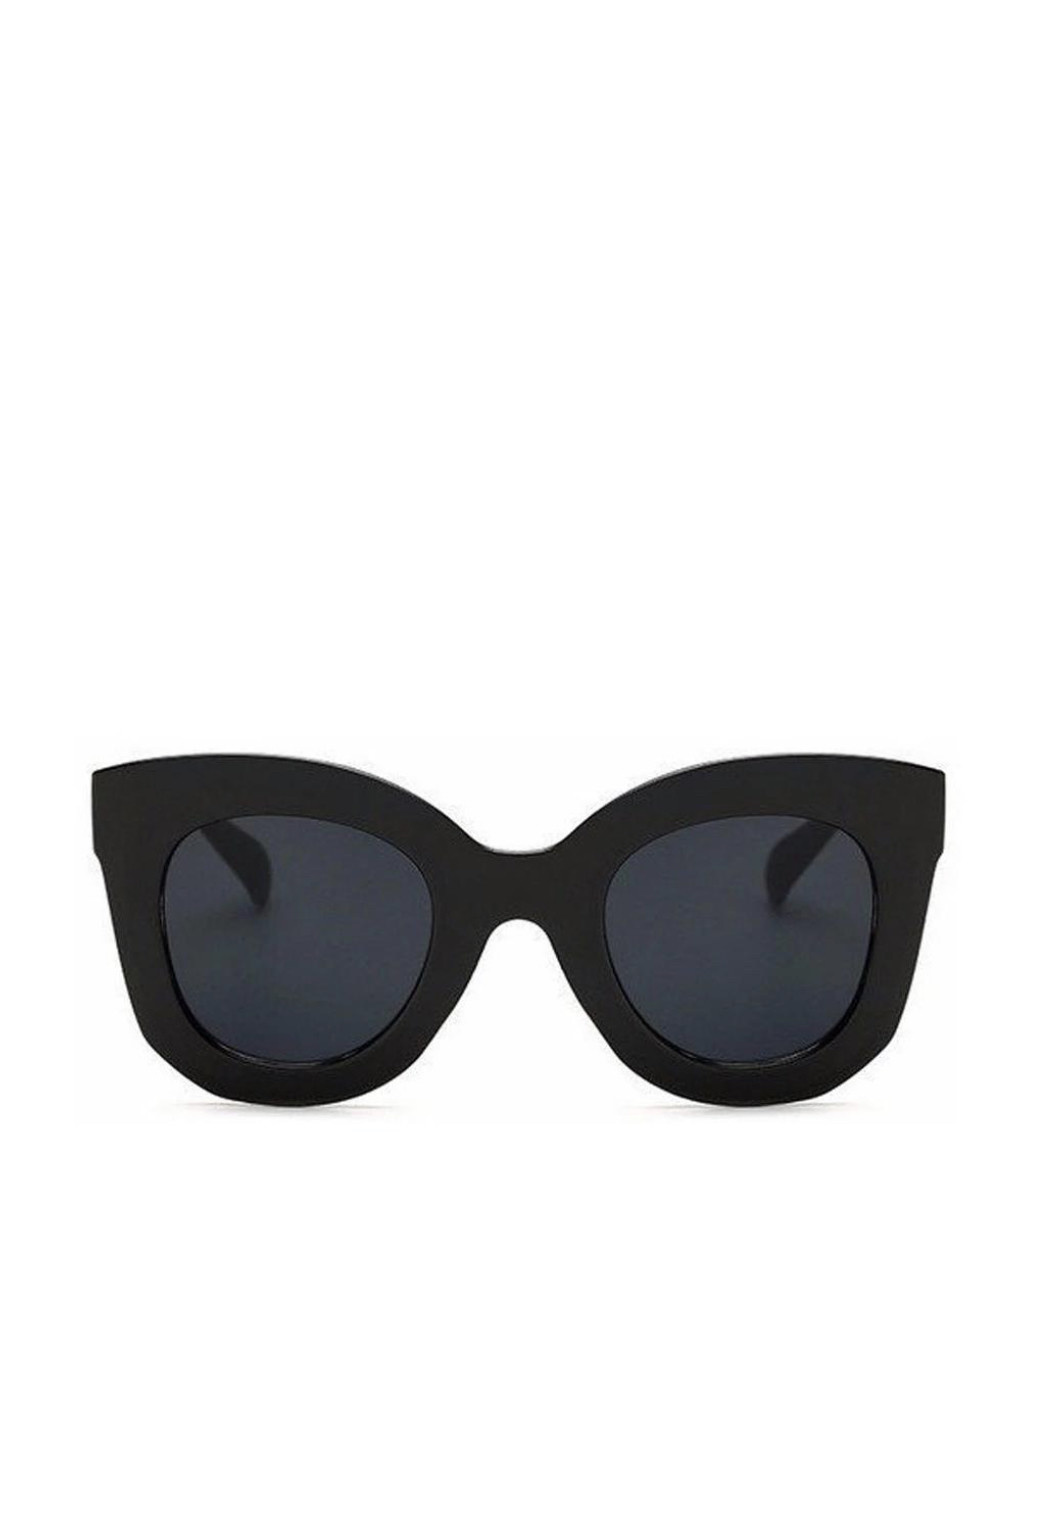 SHADY LADY EYEWEAR SHADY LADY KATE BLACK